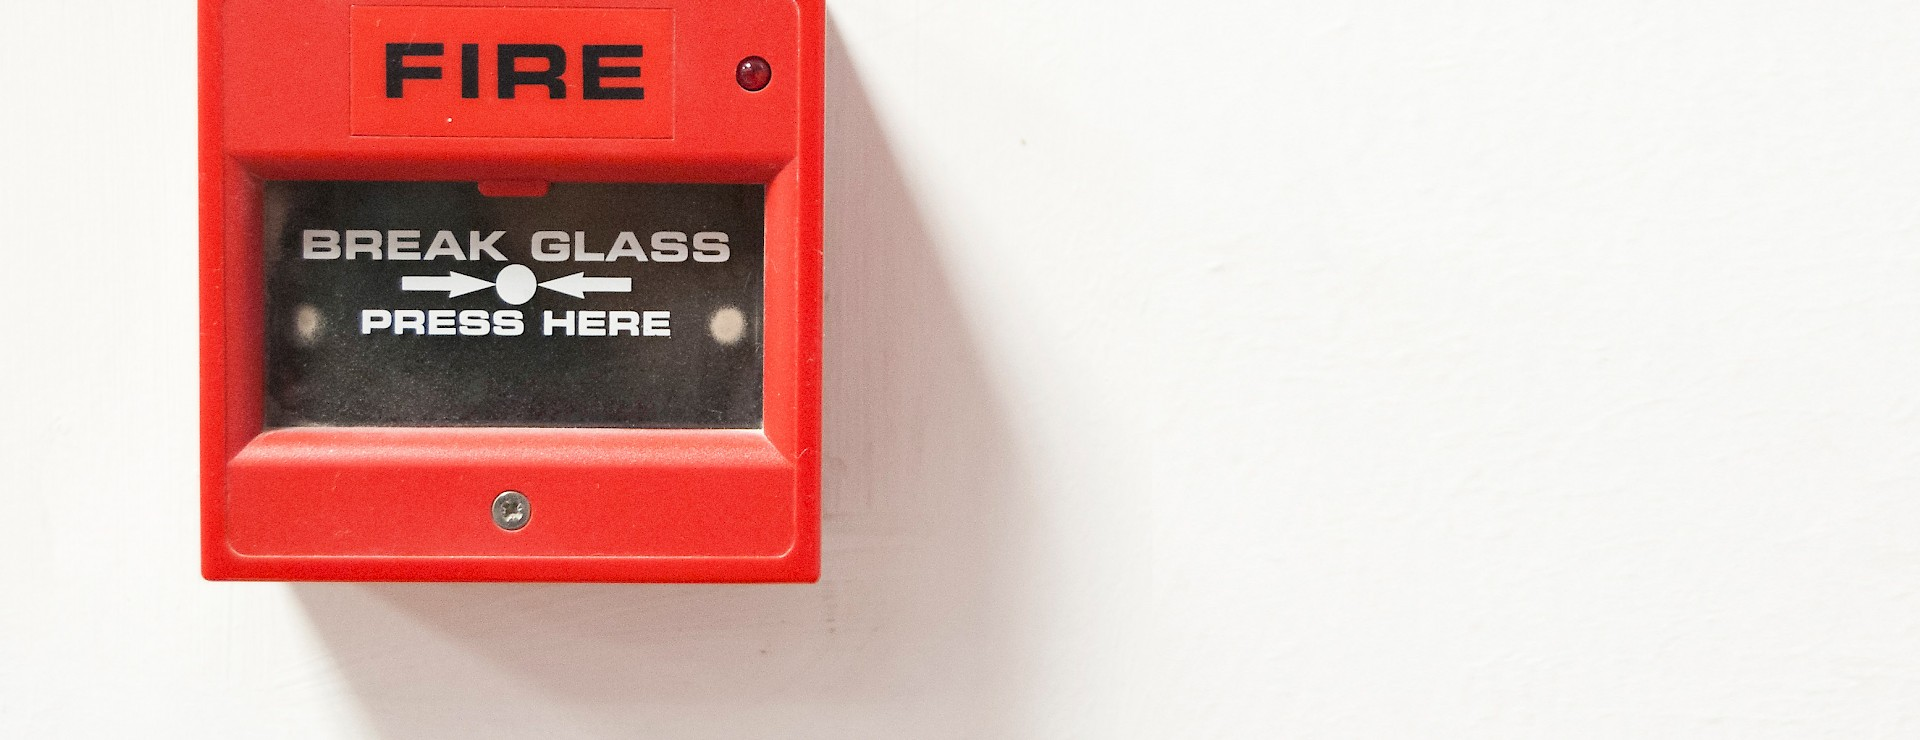 Pat Testing In Cambridge Ely And Newmarket Fixed Wire Domestic Wiring Tests Fire Alarm